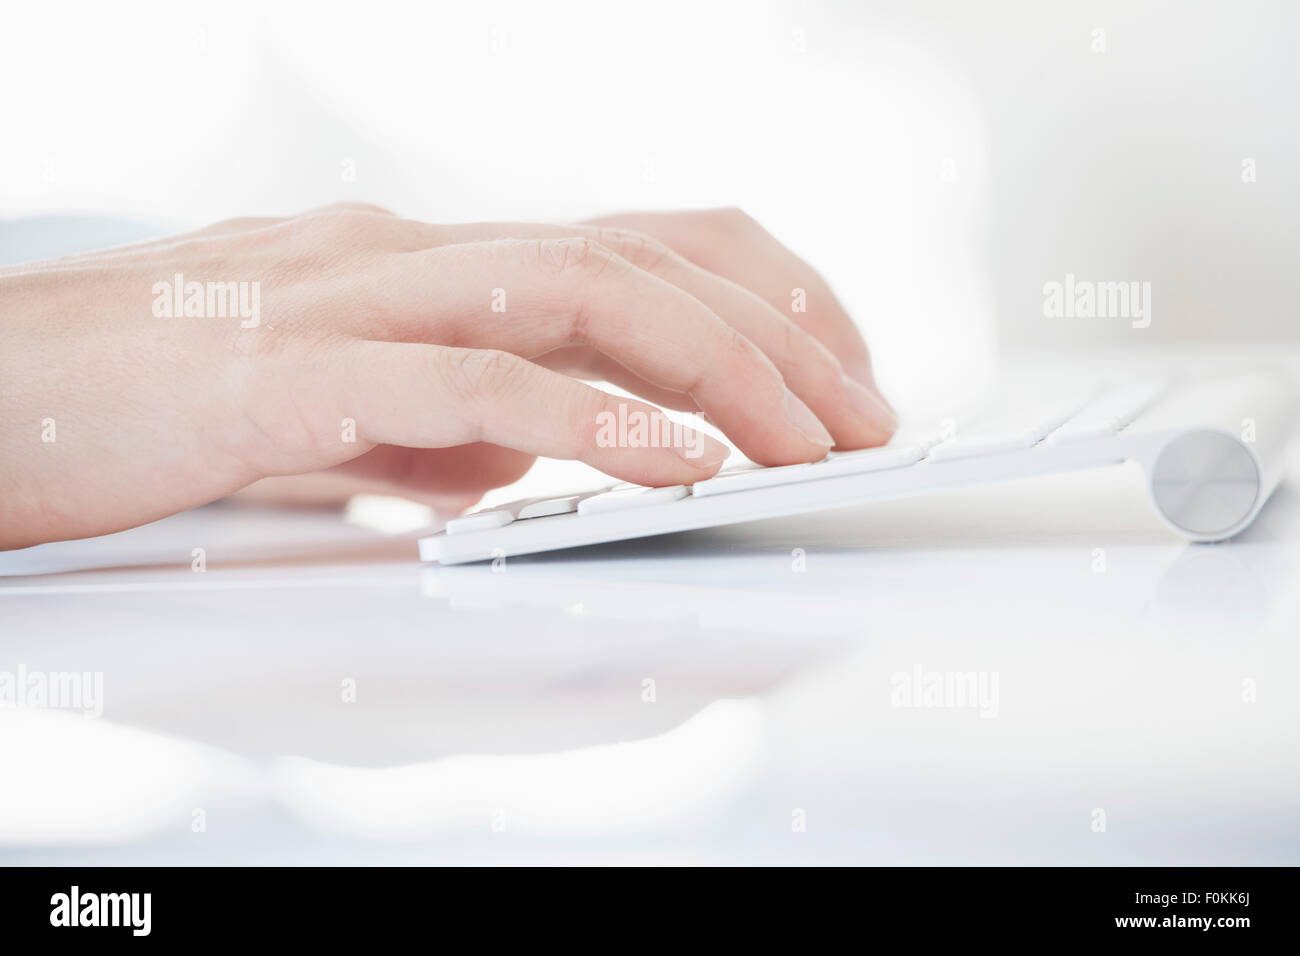 Close-up of woman's hand typing on keyboard - Stock Image